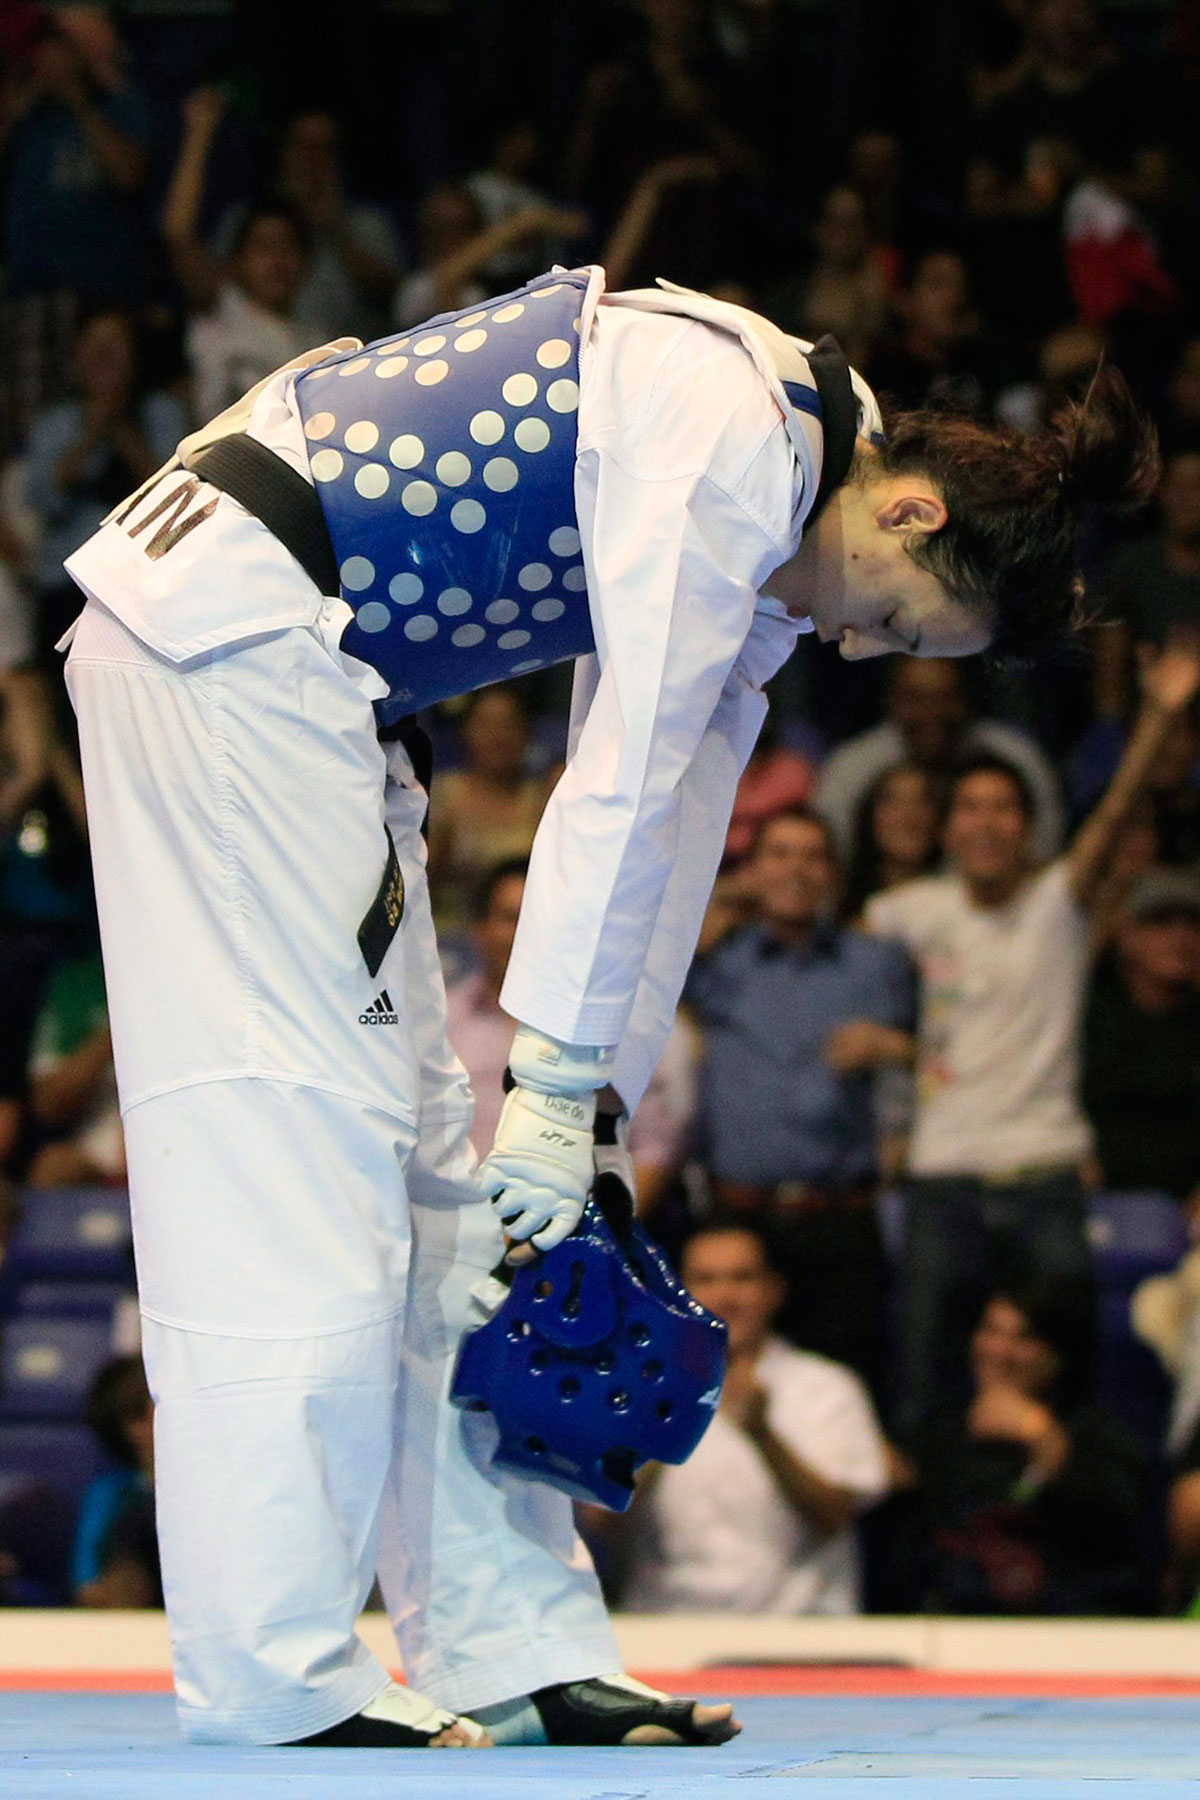 Melissa Pagnotta bows after winning Pan Am Games gold in Guadalajara, Mexico on October 17, 2011.